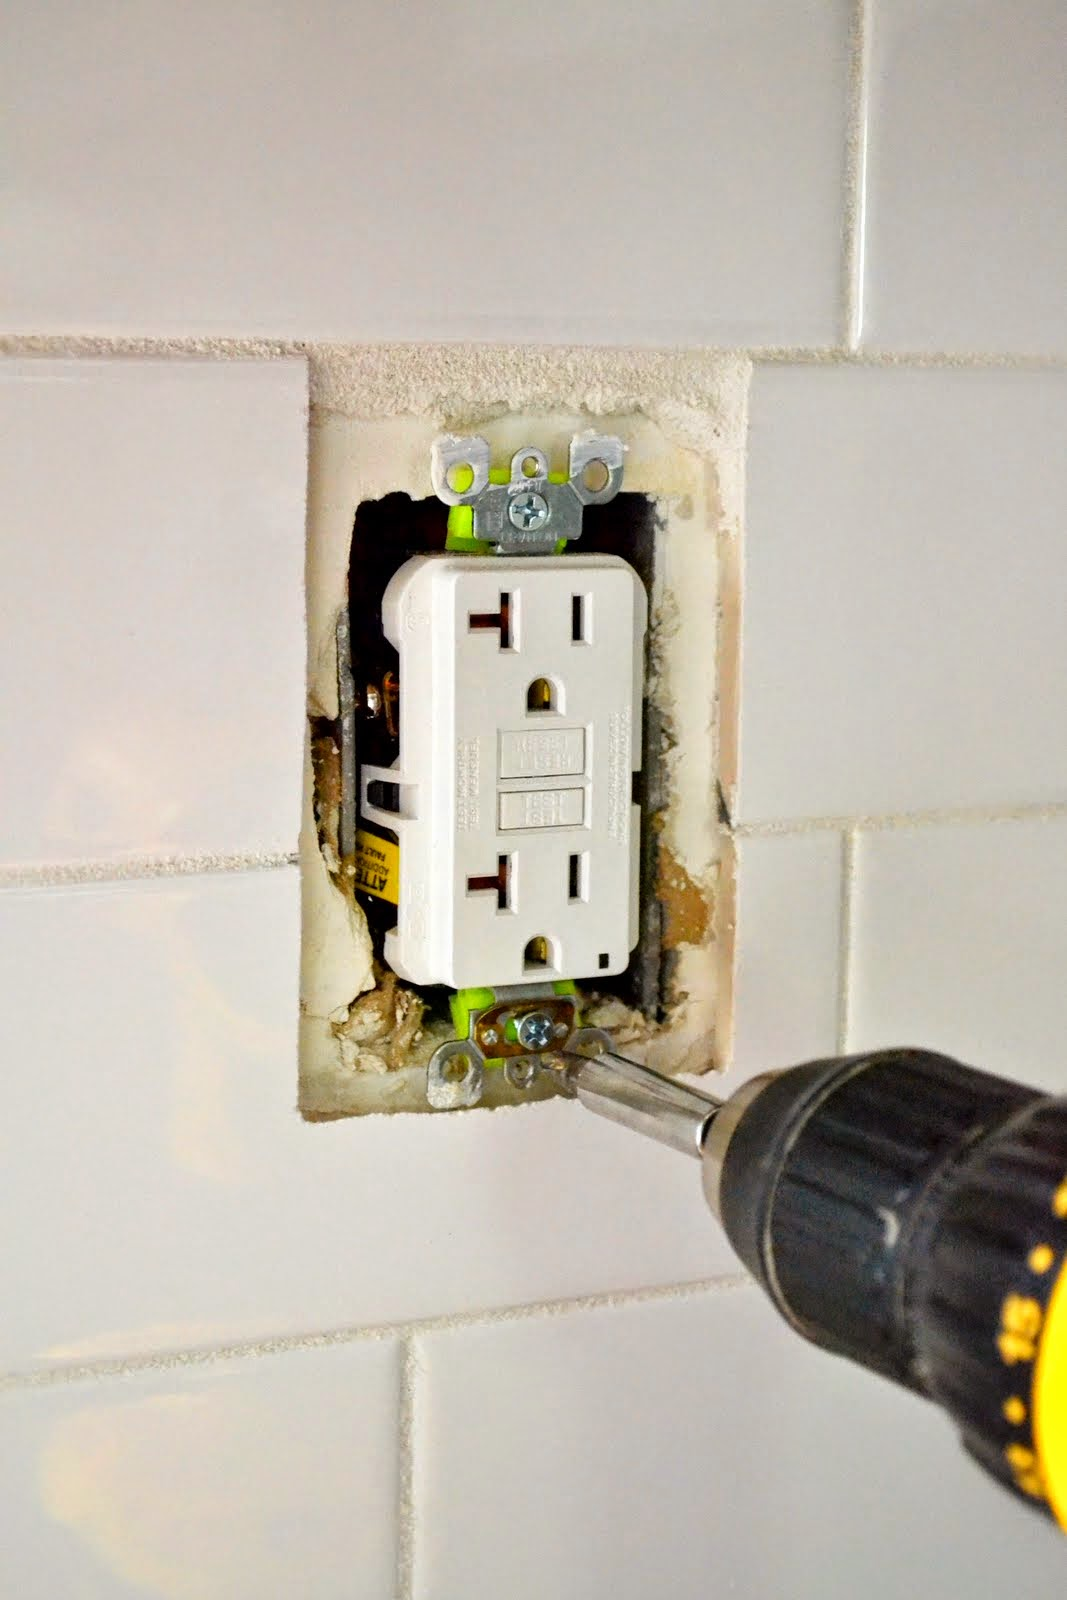 Outlet Cover Not Flush With Wall : outlet, cover, flush, Extend, Outlet, After, Tiling, Loose